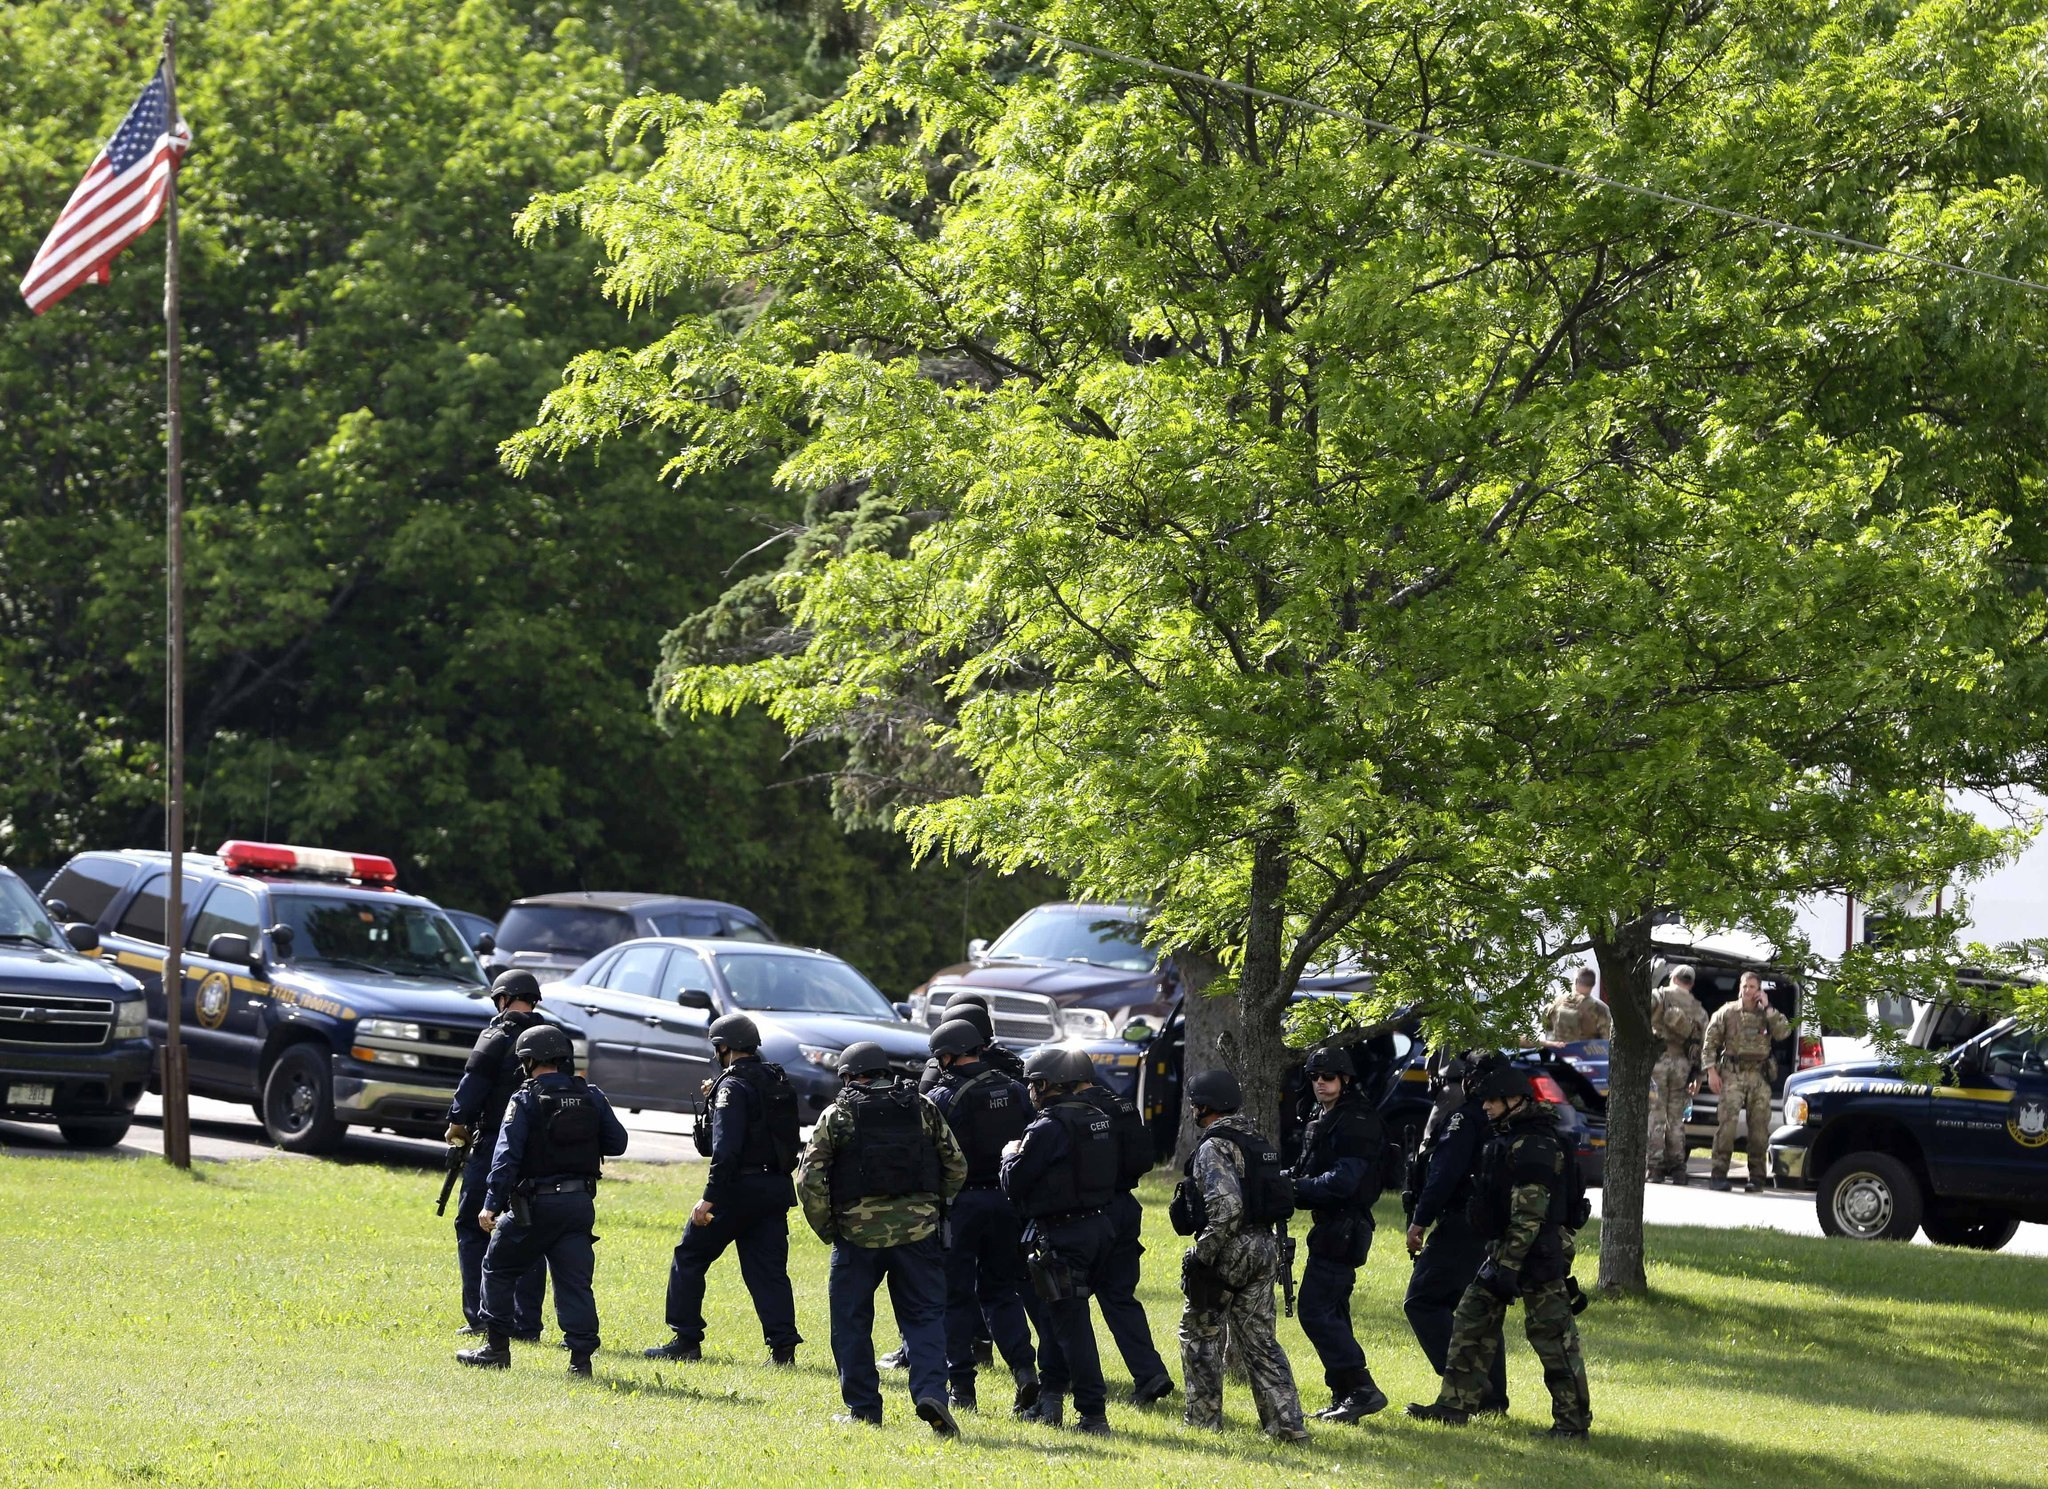 New York manhunt for escaped killers focuses on area near